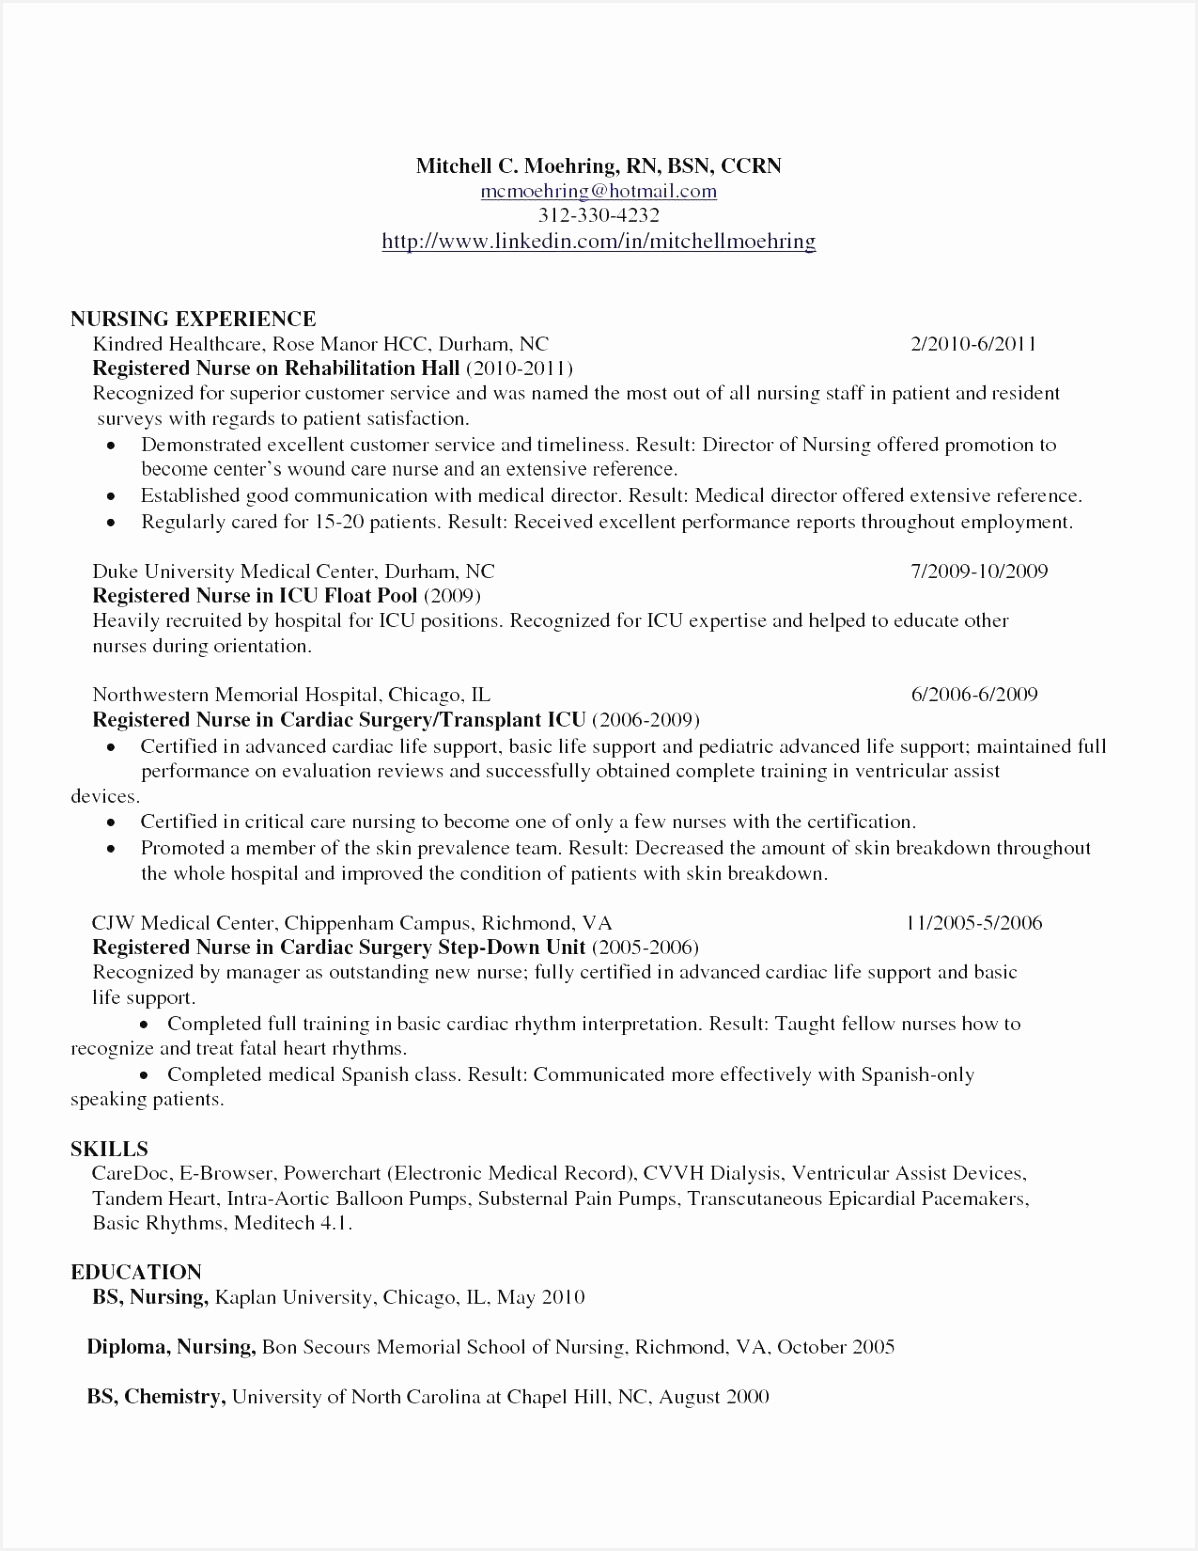 Nurse Graduate Resume Ysfhc Fresh 24 Rn New Graduate Resume15511198